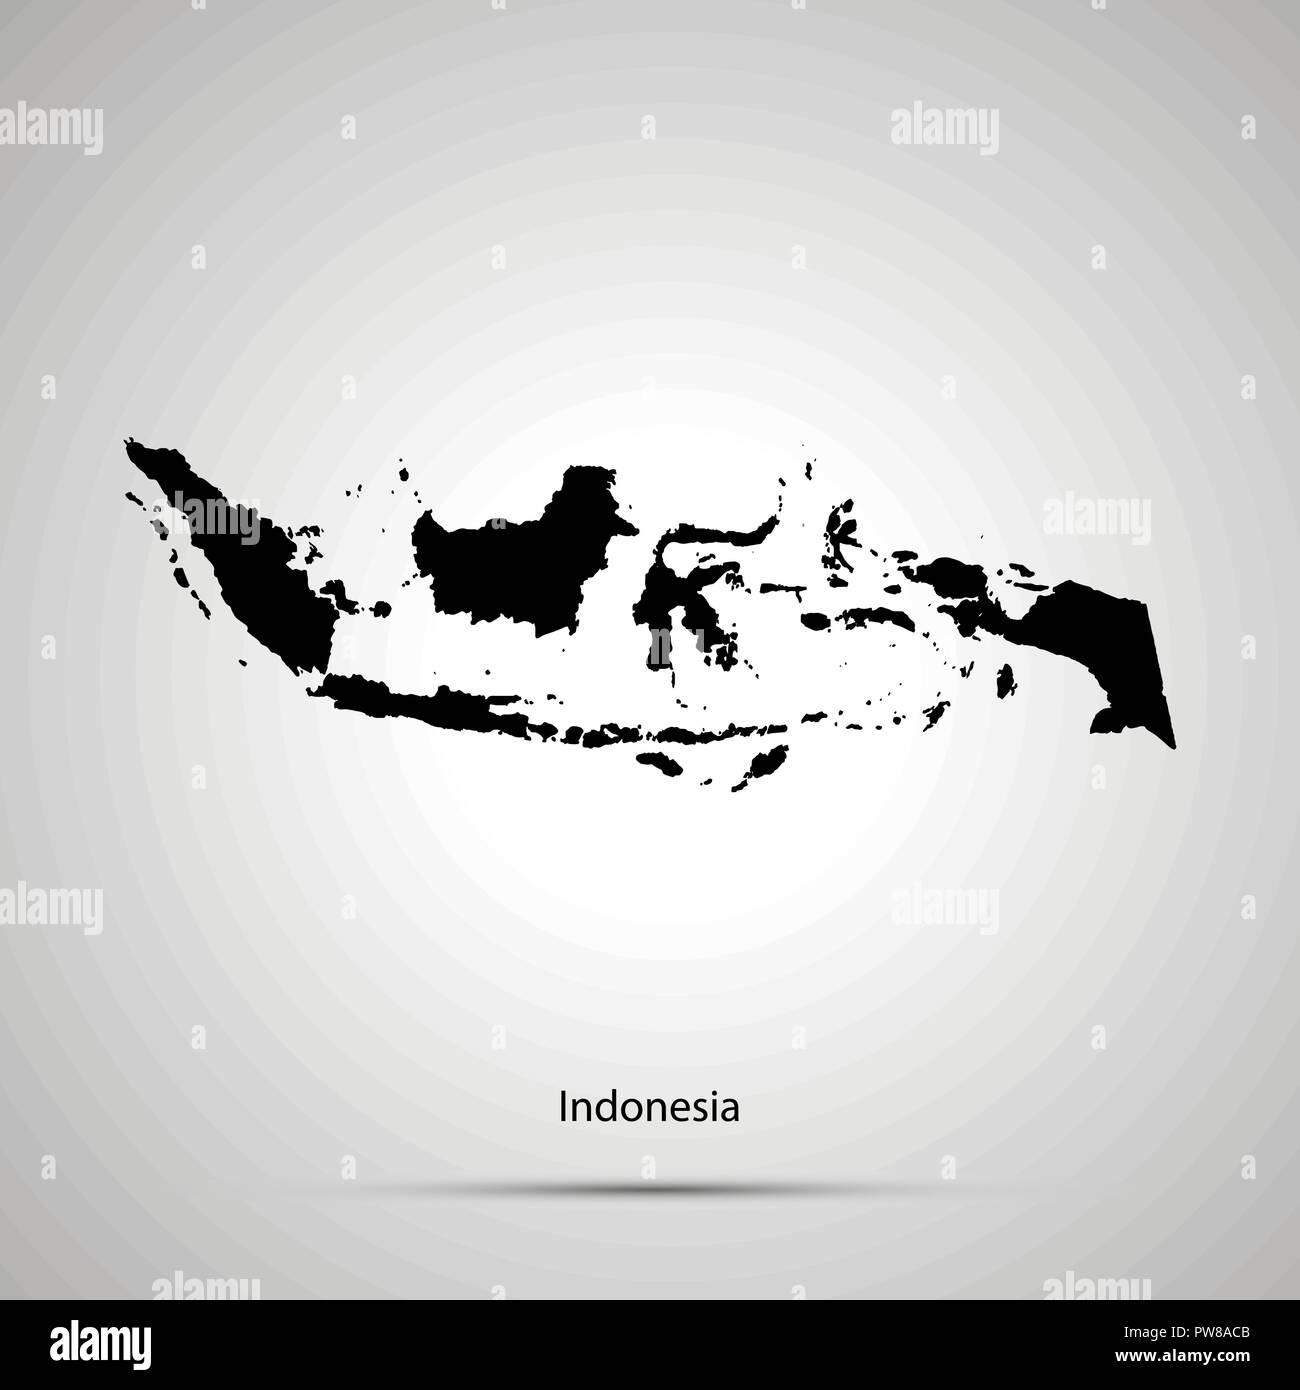 Indonesia country map, simple black silhouette on gray Stock Vector